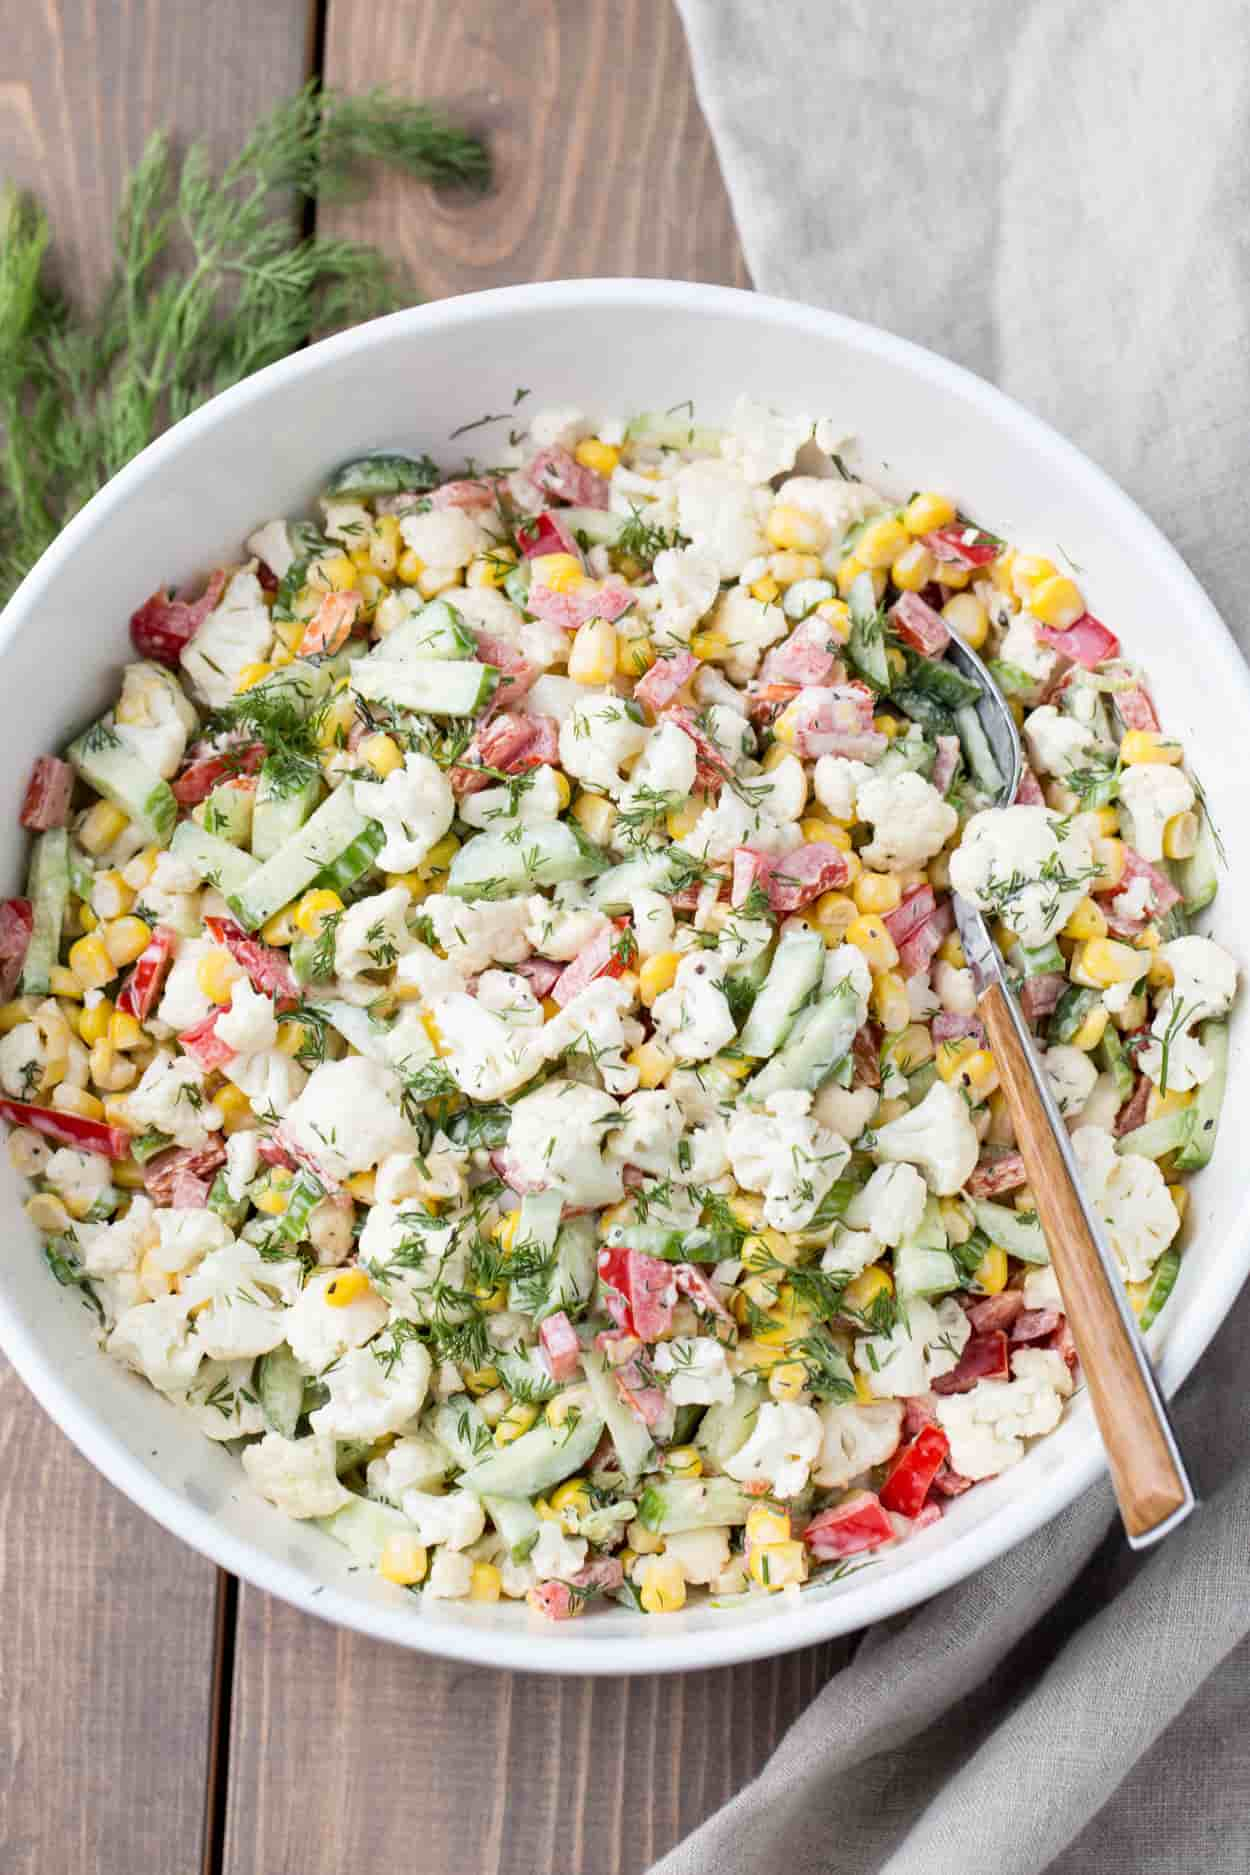 Corn salad with cucumbers in a bowl.